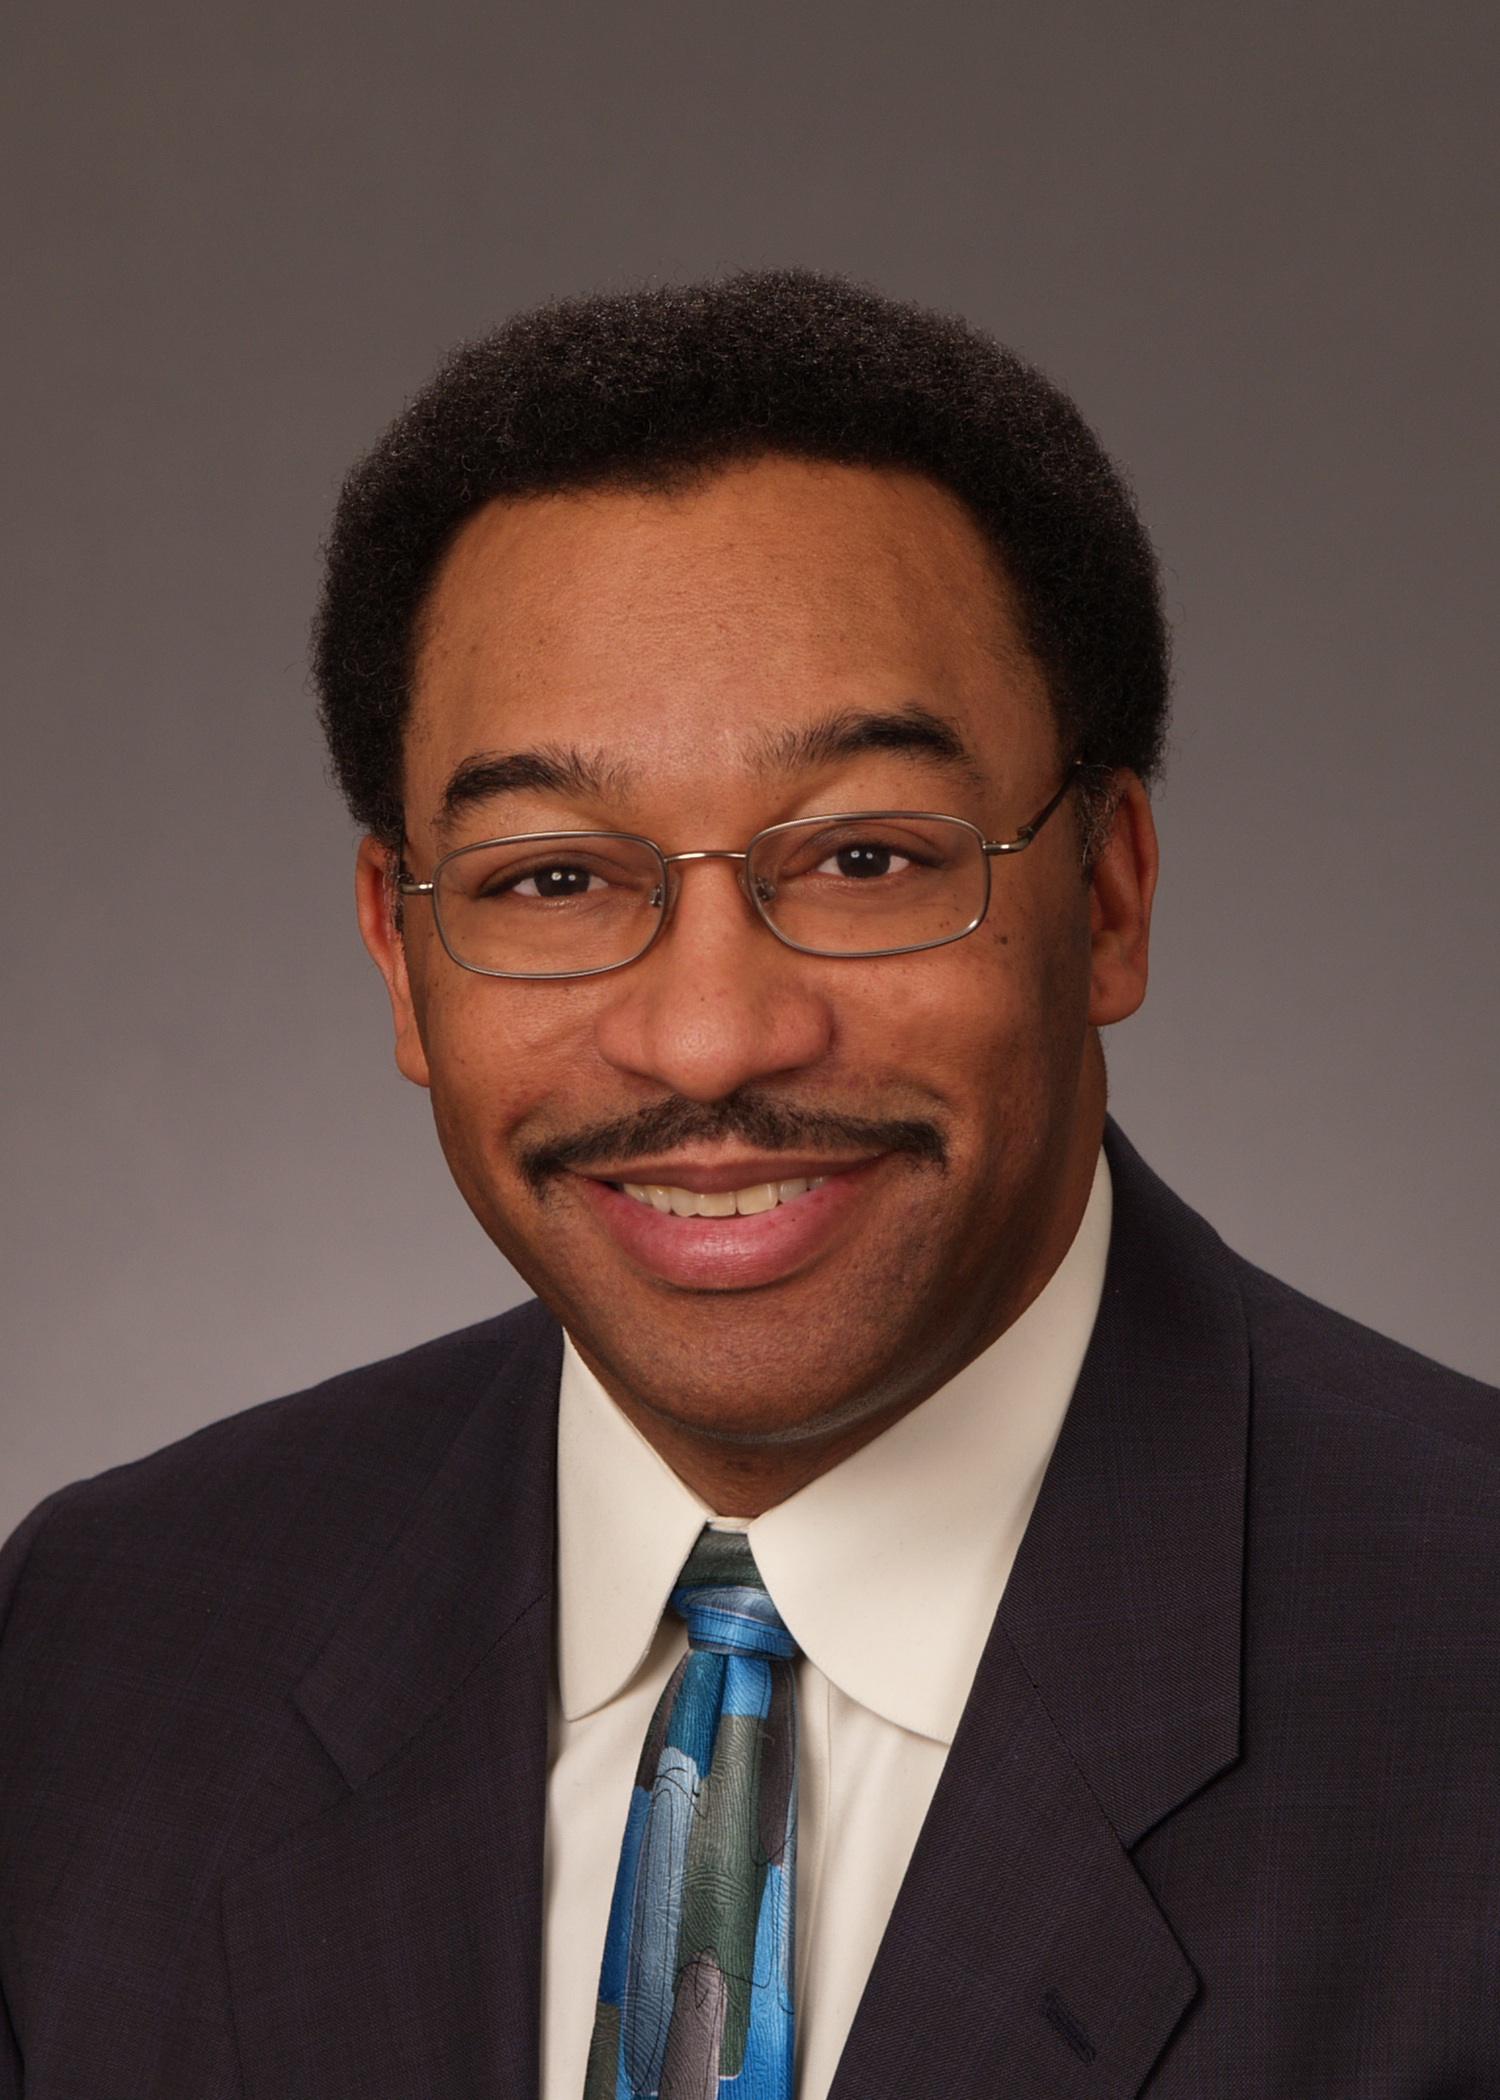 Black Sales Journal Publisher Michael L. Parker (Image: Courtesy of Subject)